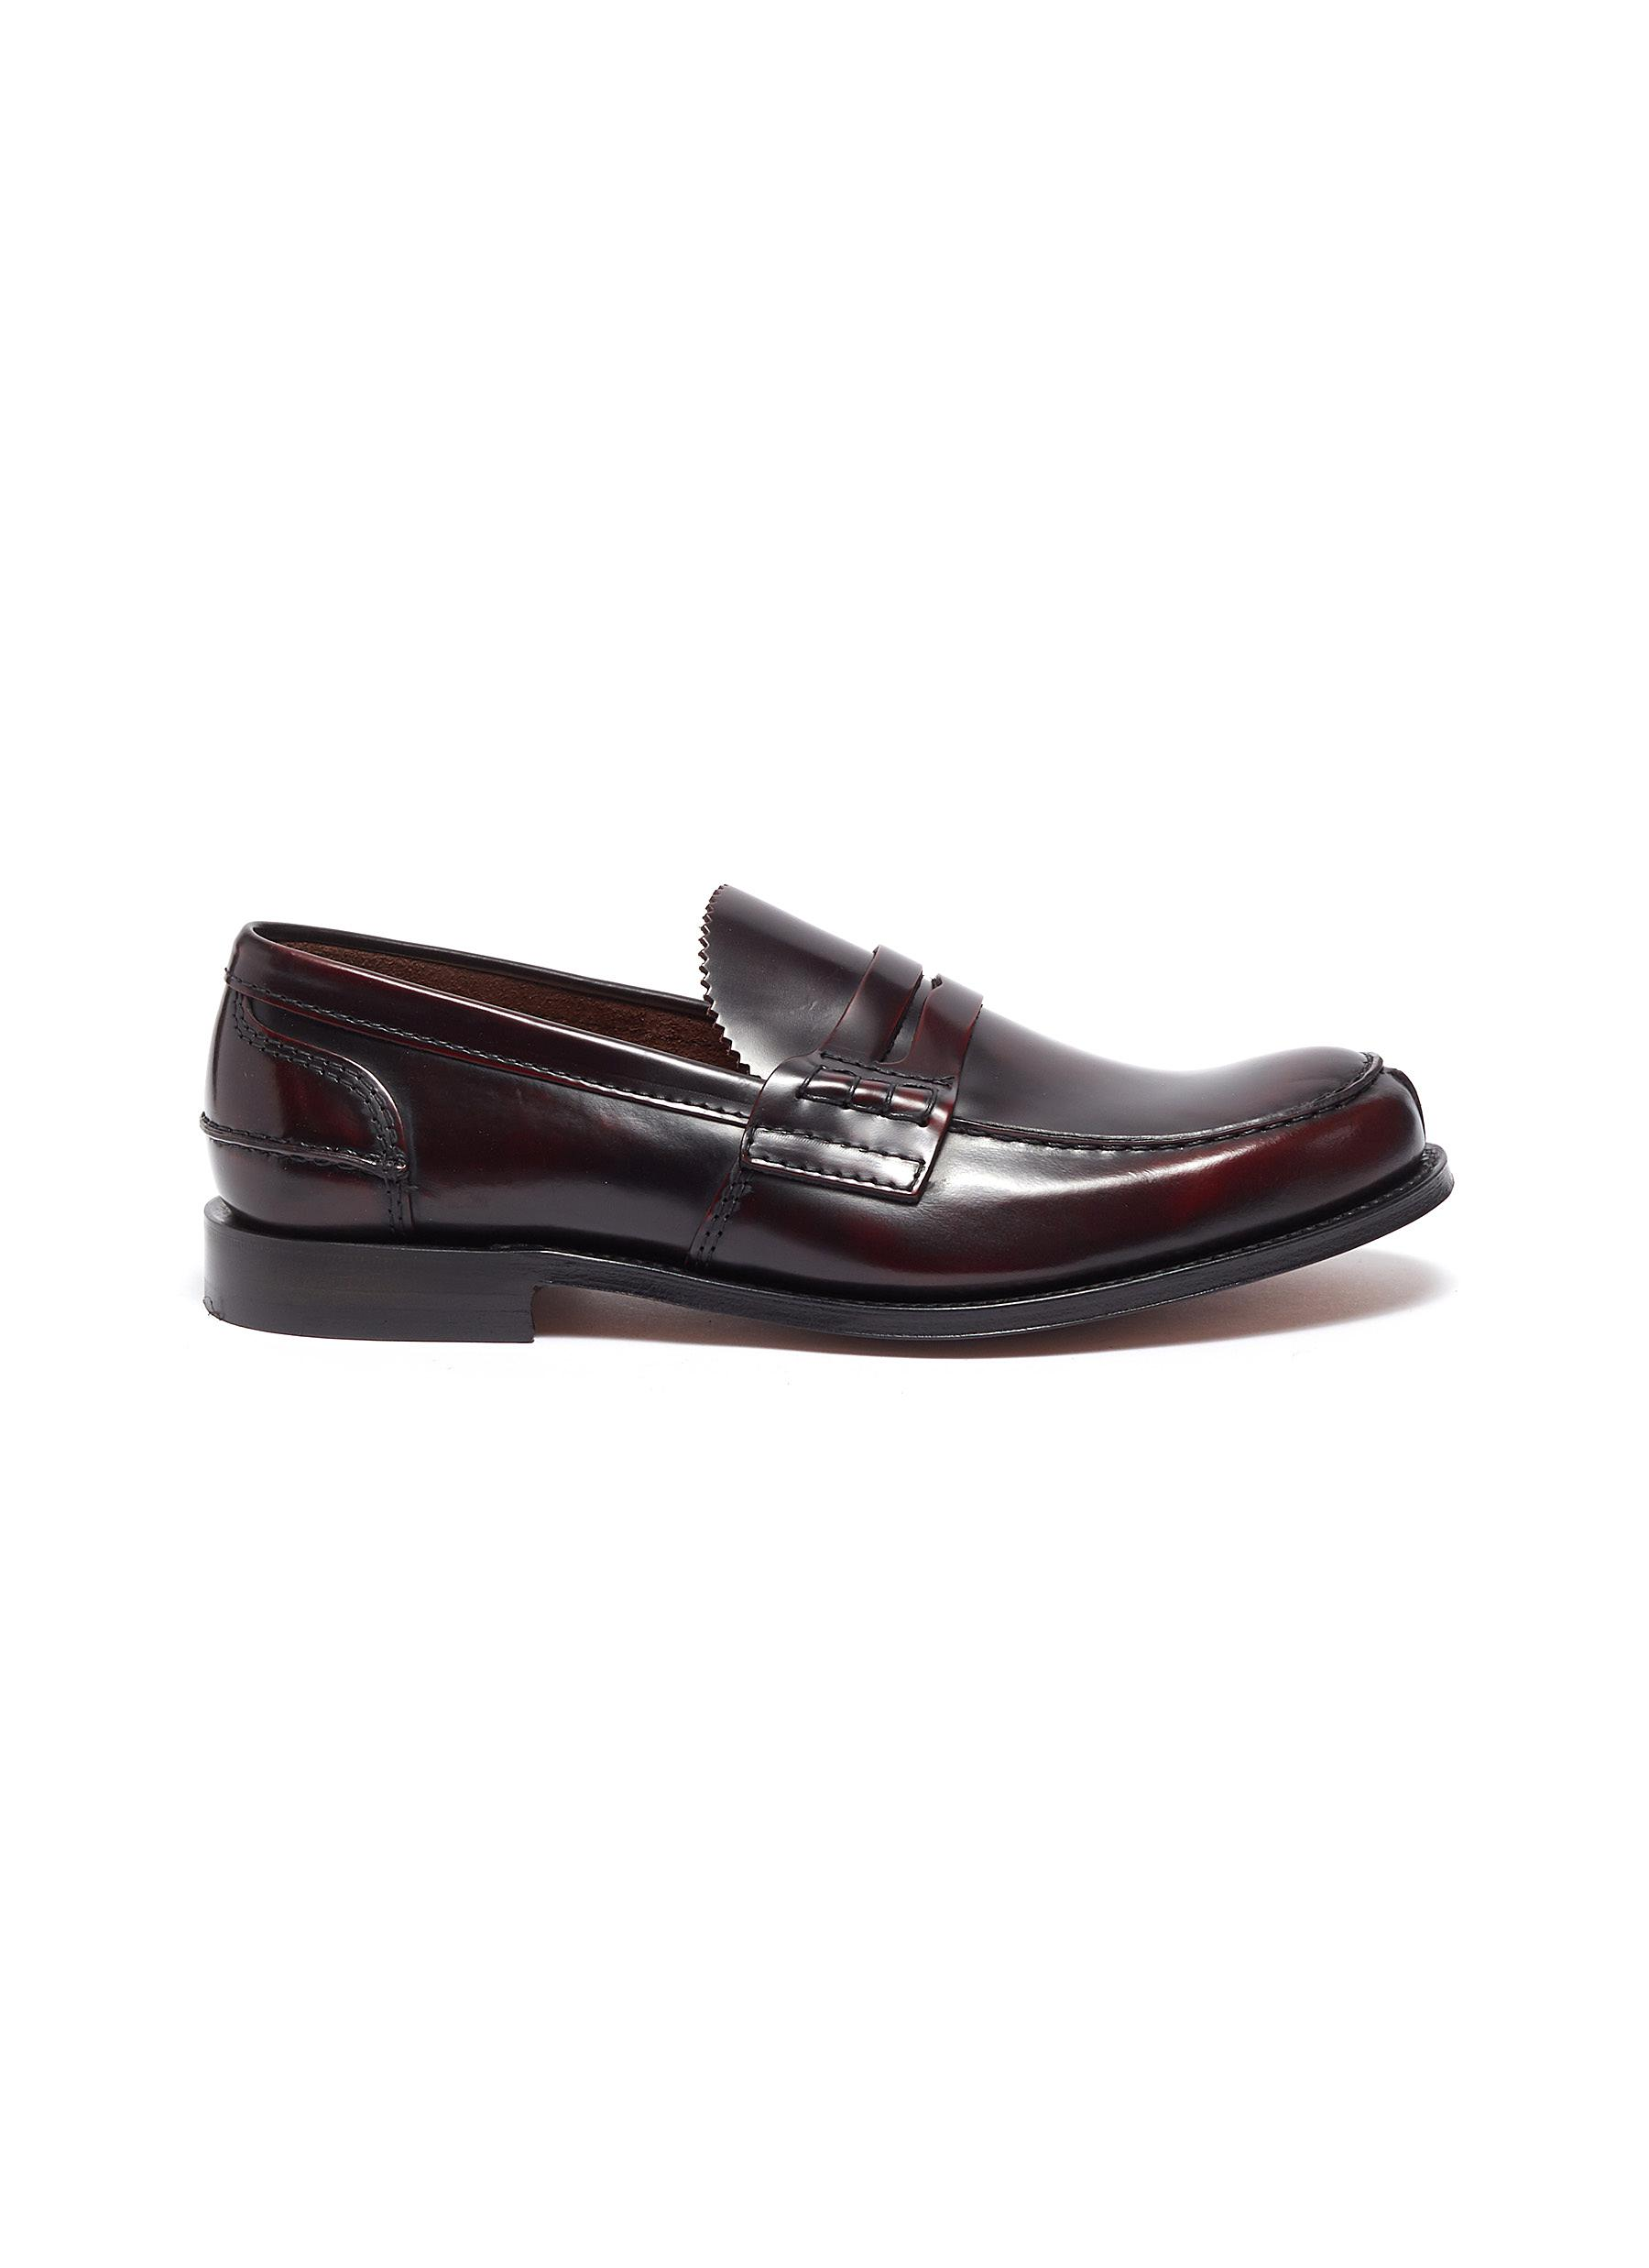 1dd11e608ac5 Church s.  Tunbridge  leather penny loafers